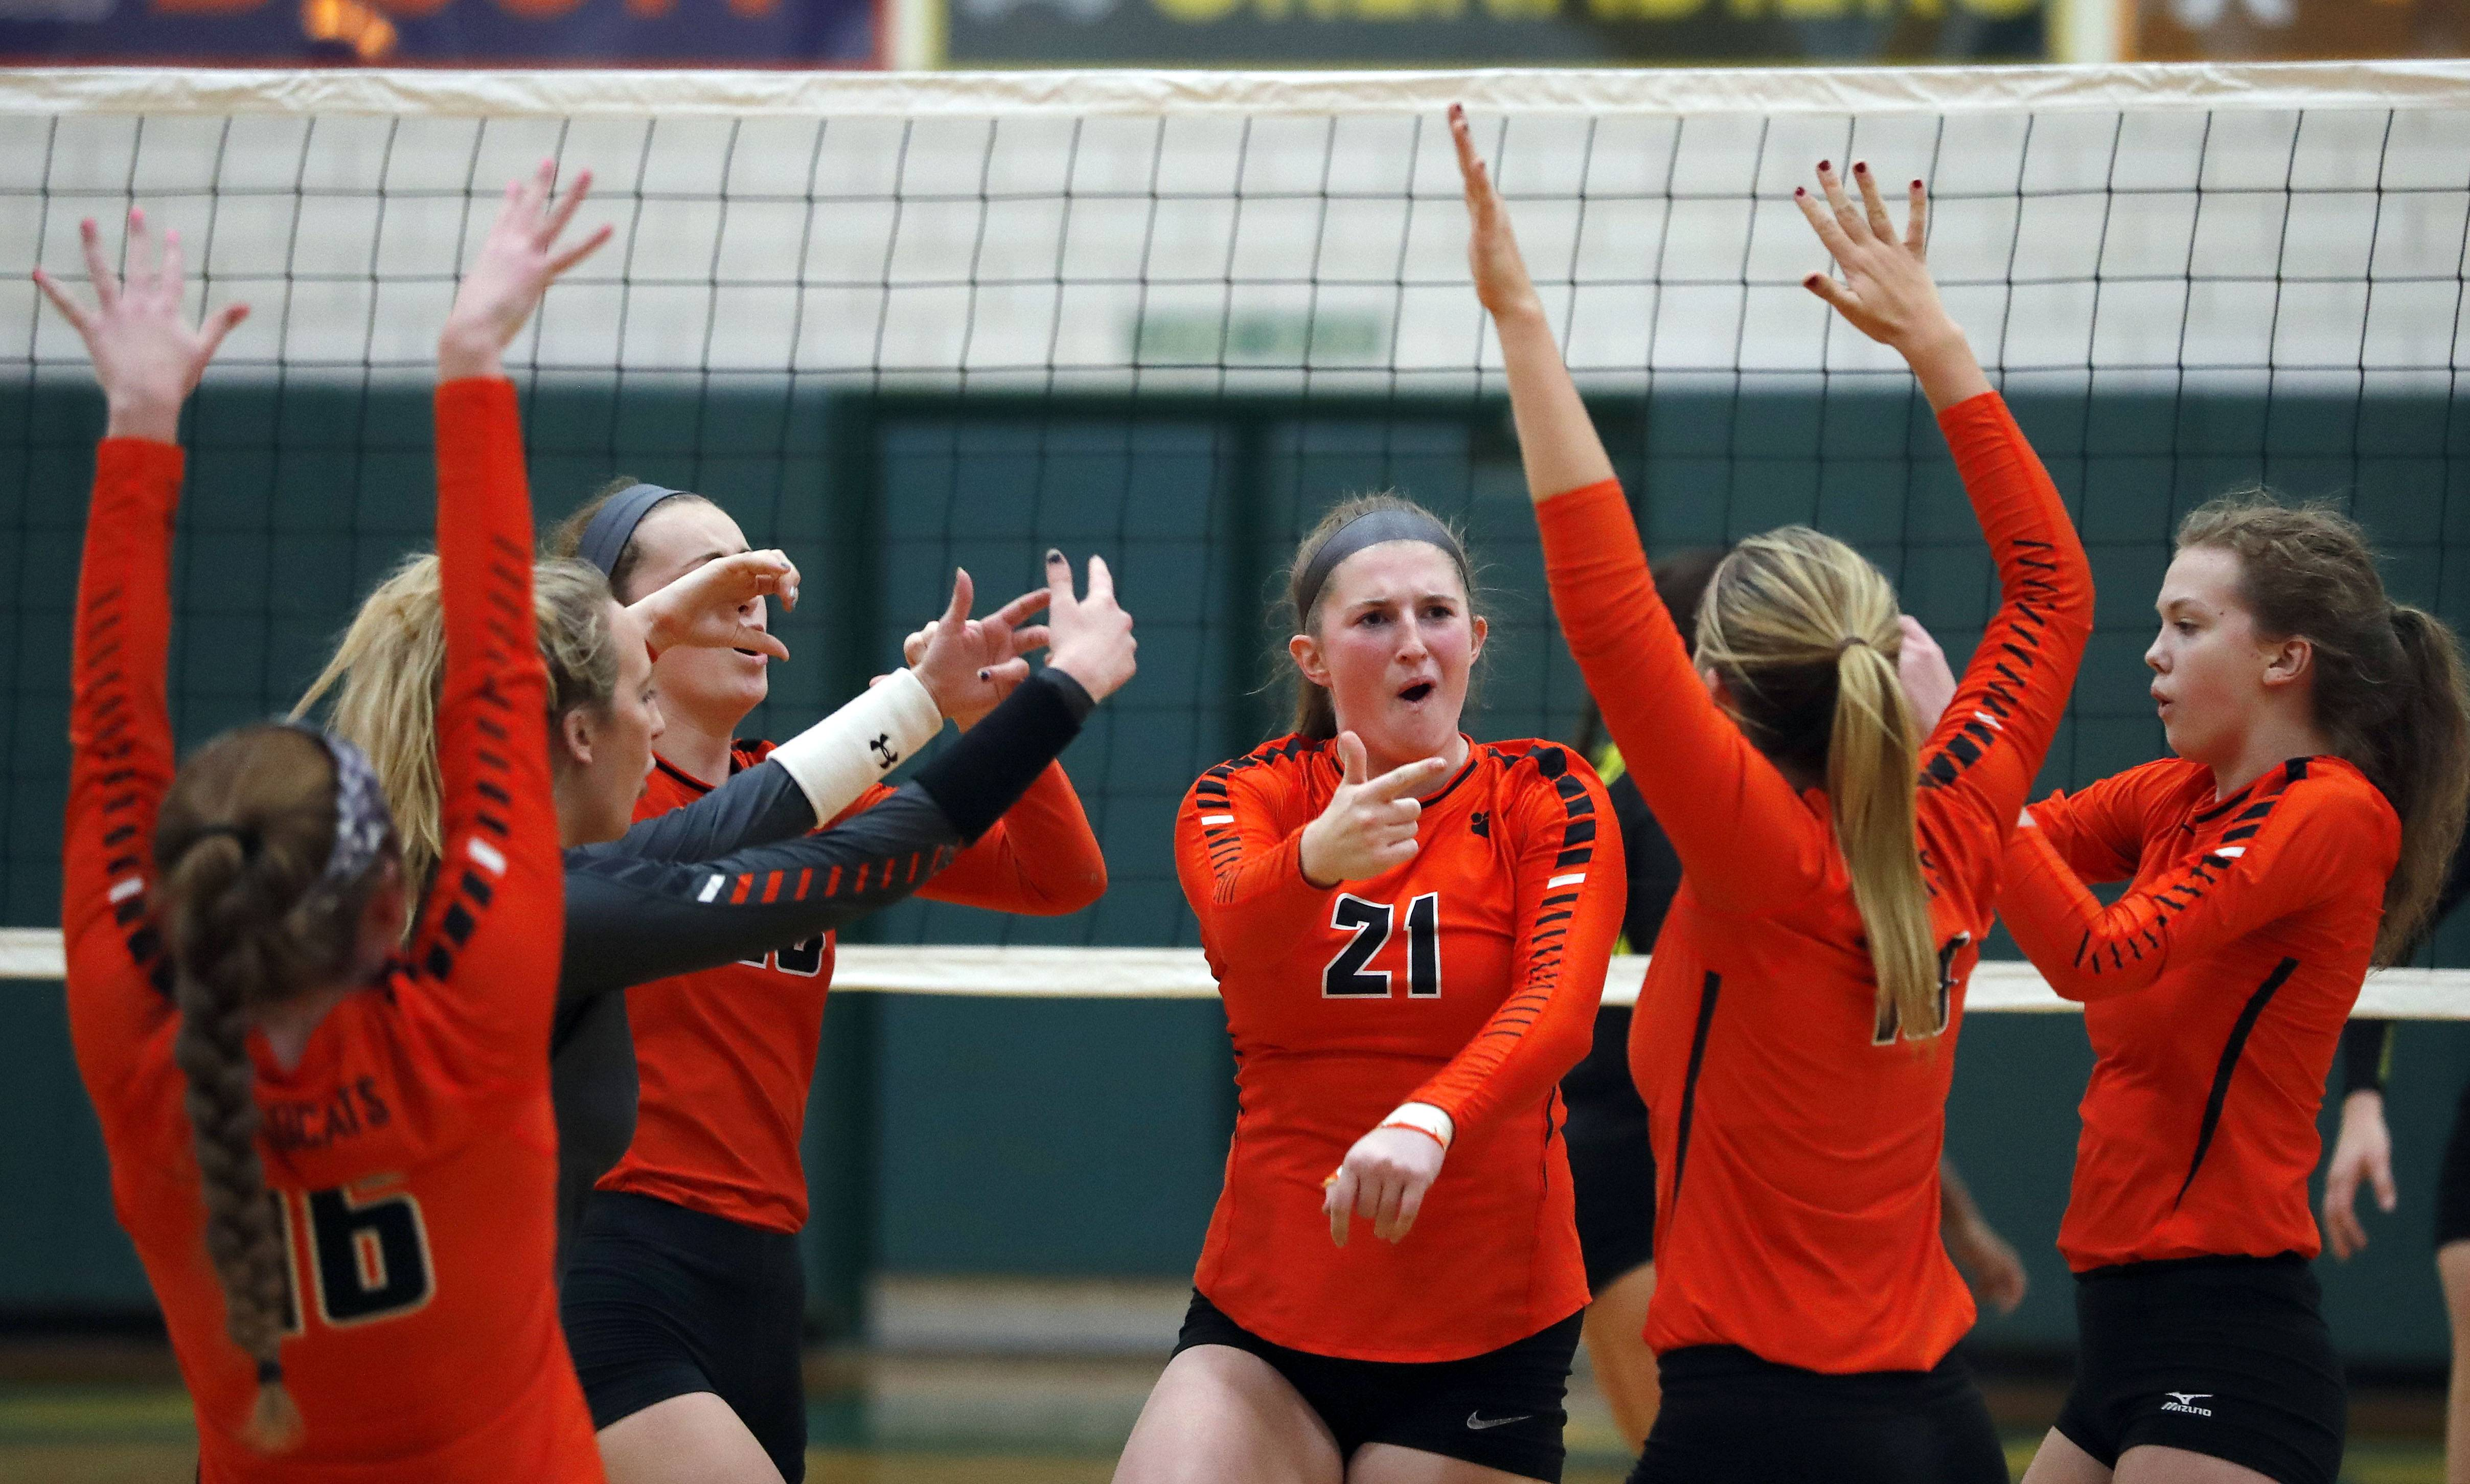 Libertyville players celebrate Monday against host Fremd.